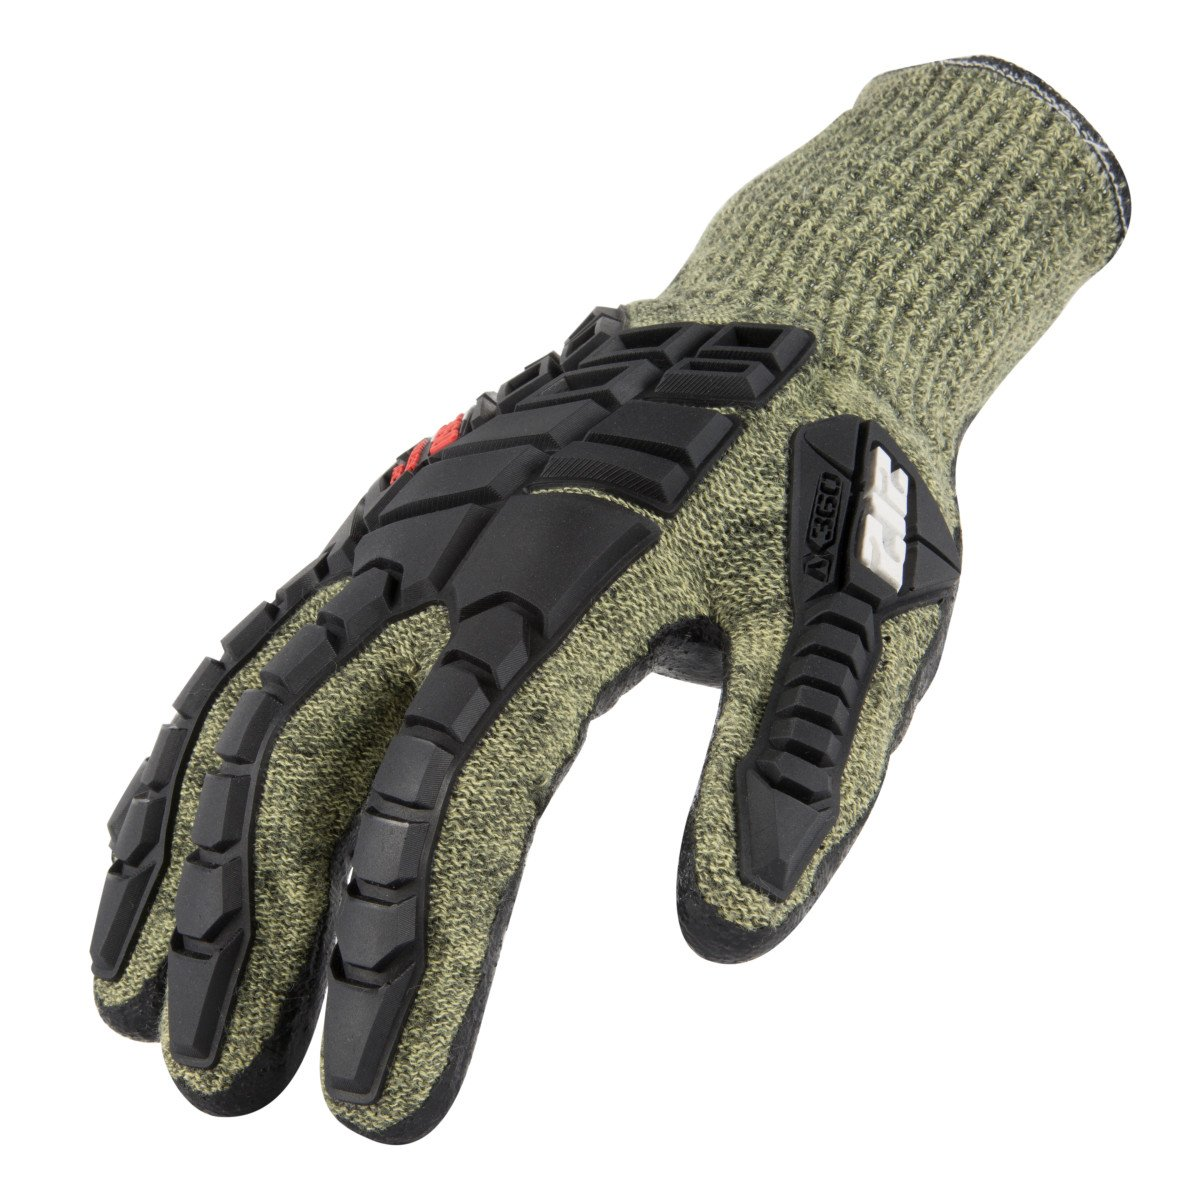 212 Performance Gloves AXA4-70-012 AX360 Seamless Electrical Arc Flash 4 Resistant Gloves, 2X-Large